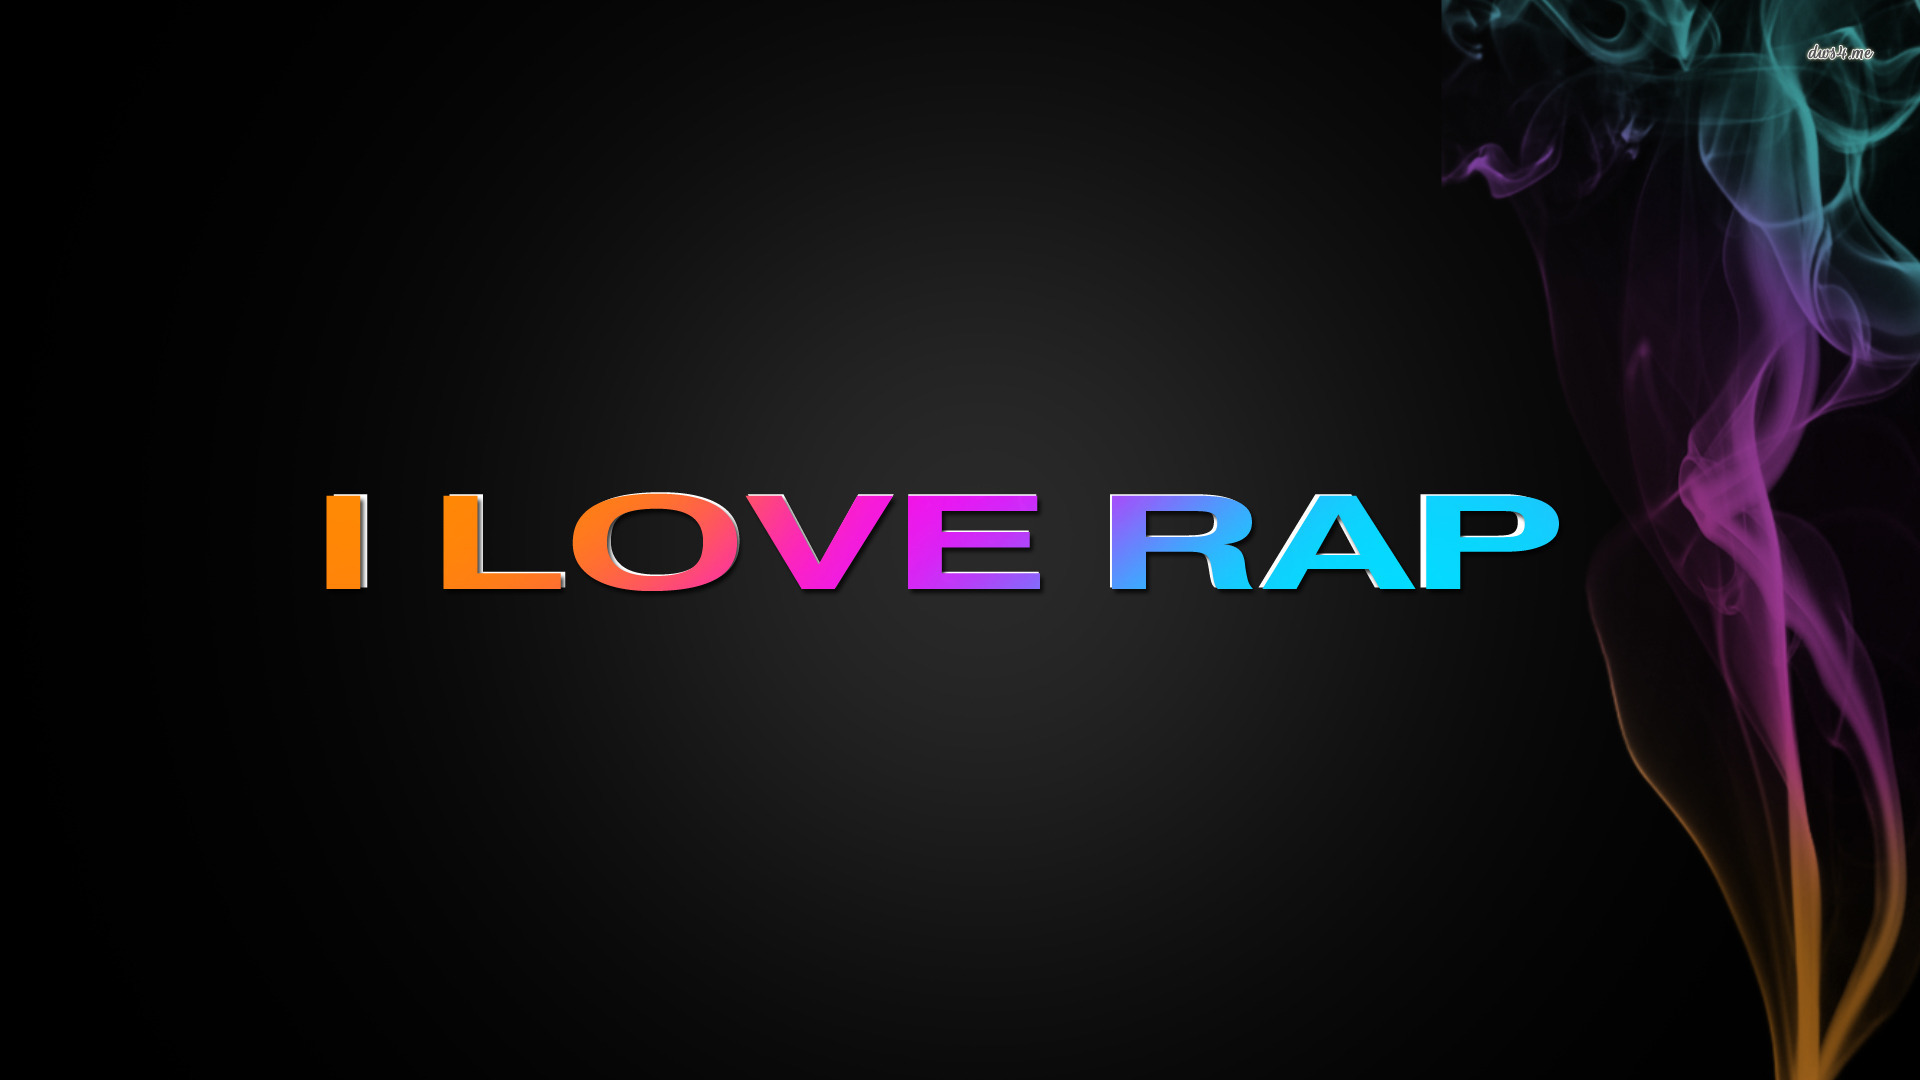 Raps Wallpaper Wallpaper Freeware 1024 768 Pixel Wallpaper 1920x1080